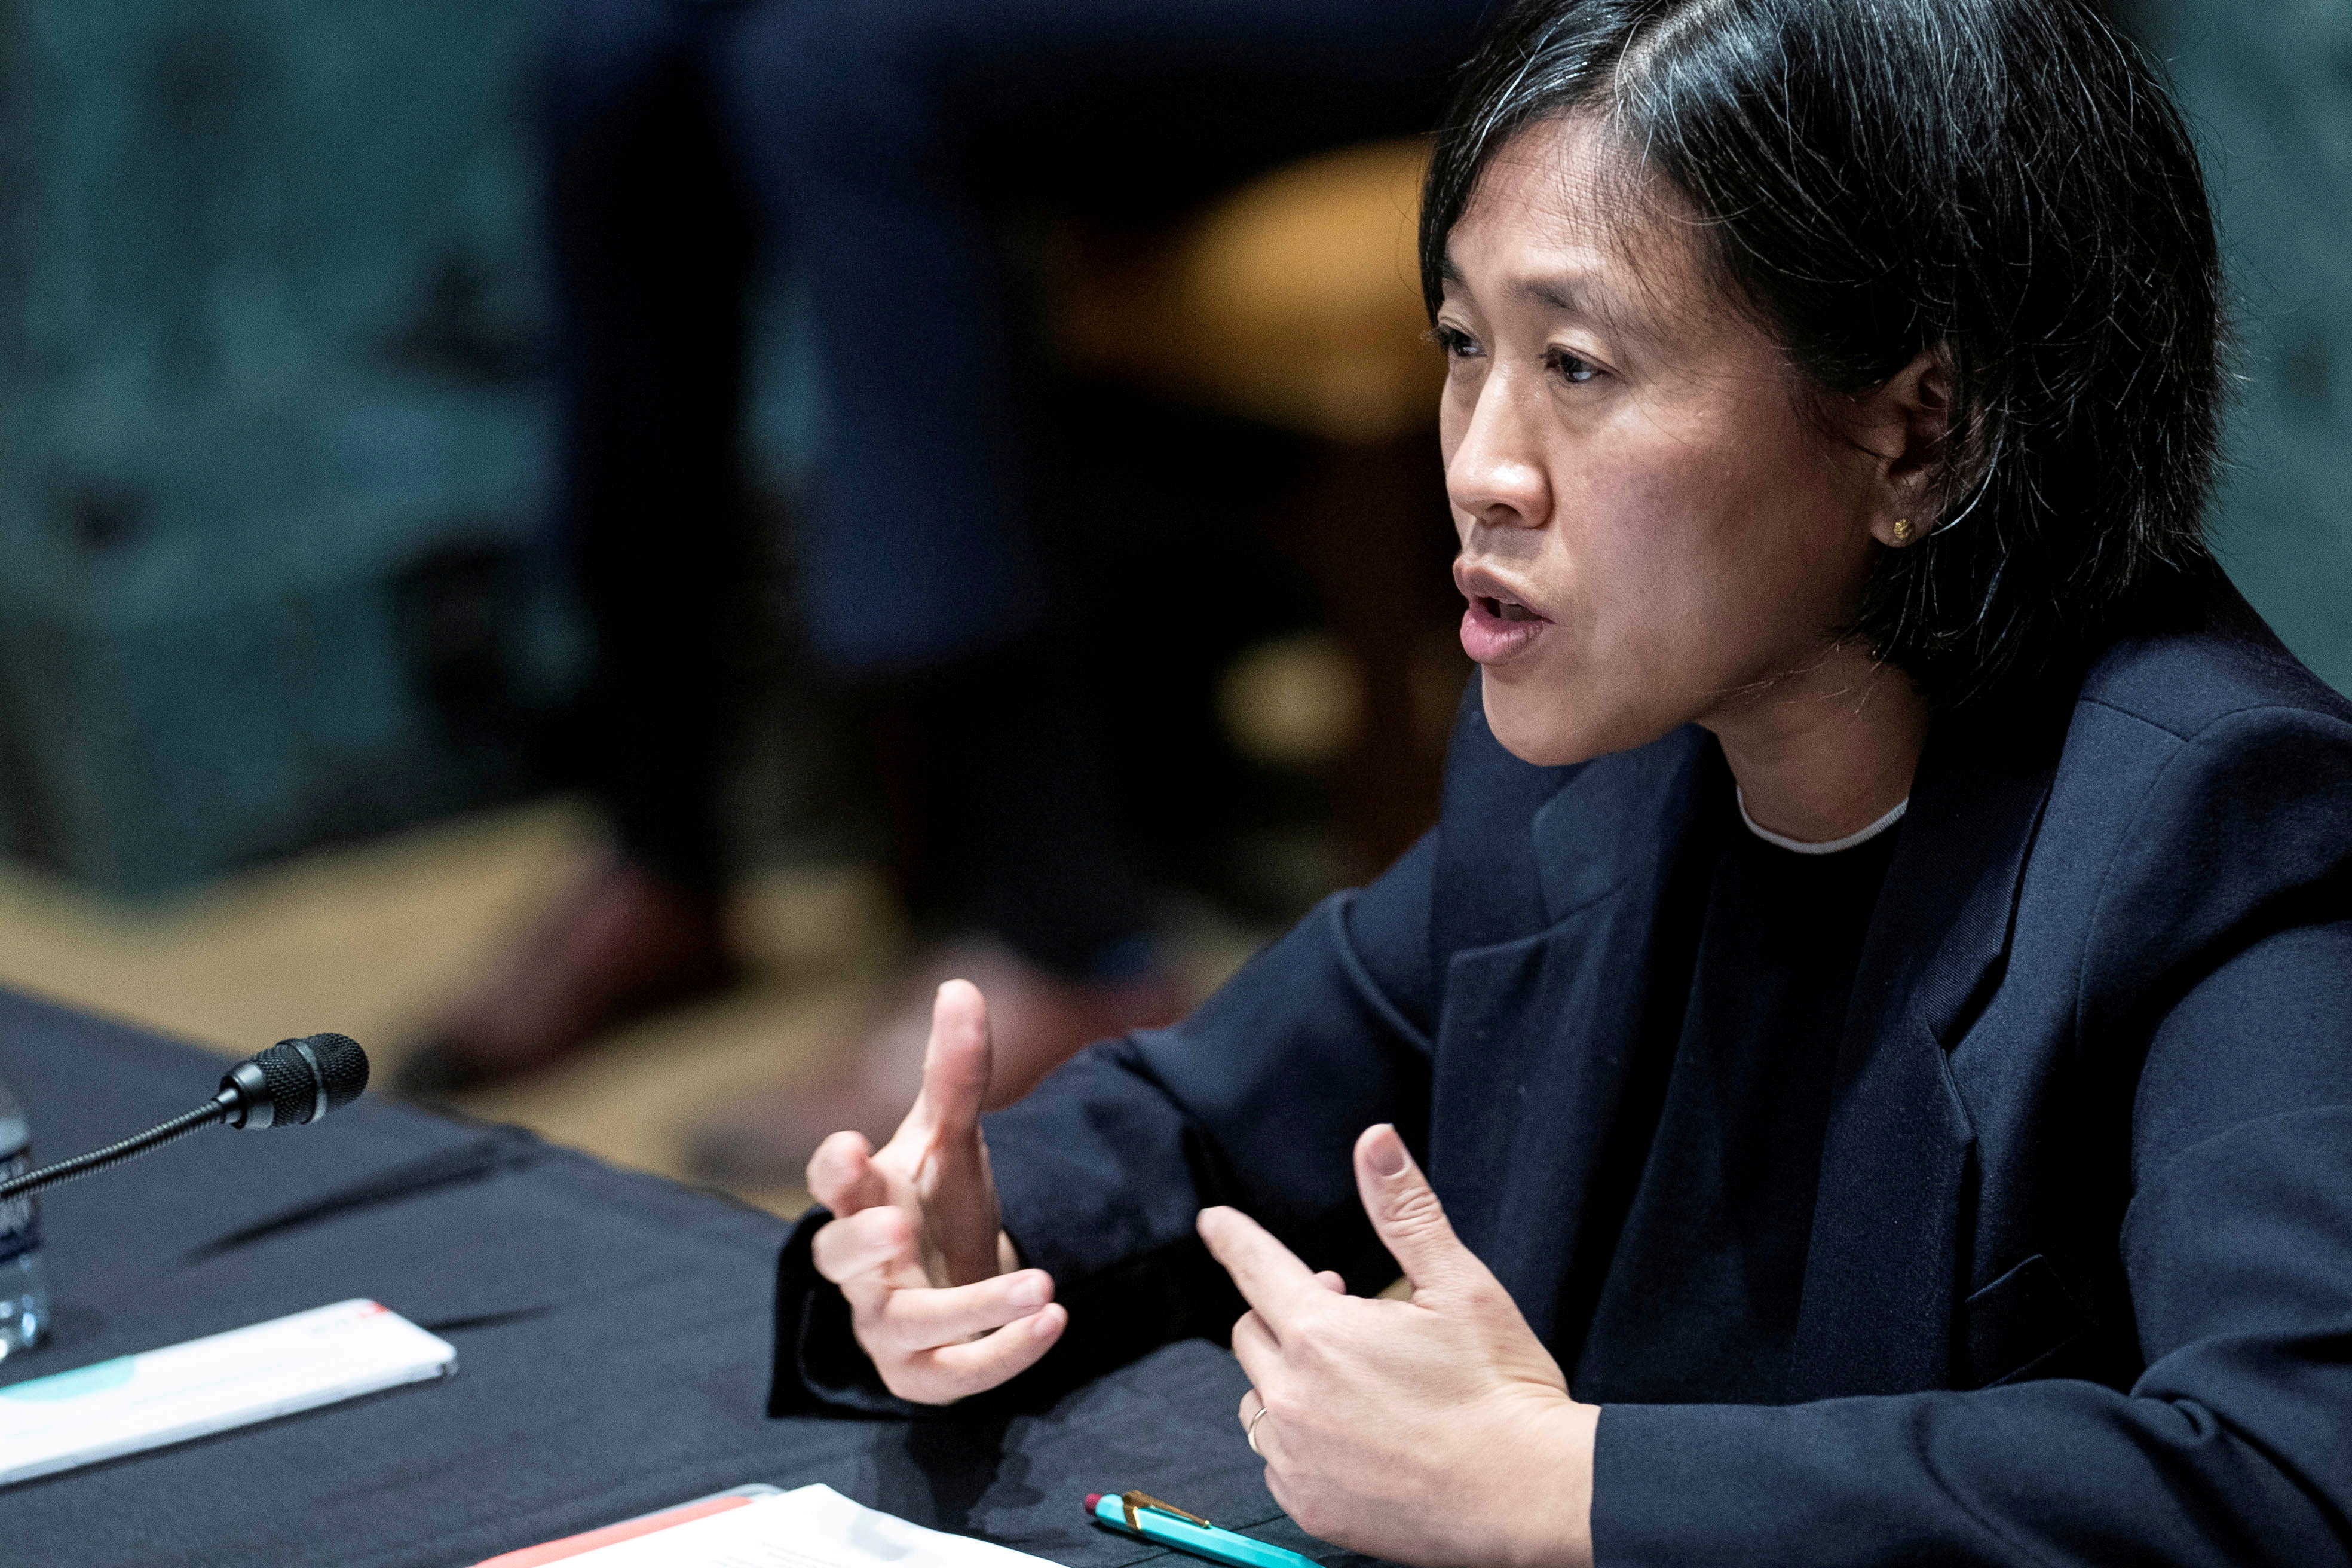 U.S. Trade Representative Katherine Tai testifies before a Senate Appropriations subcommittee during a hearing on Capitol Hill, in Washington, U.S., April 28, 2021. Sarah Silbiger/Pool via REUTERS/File Photo